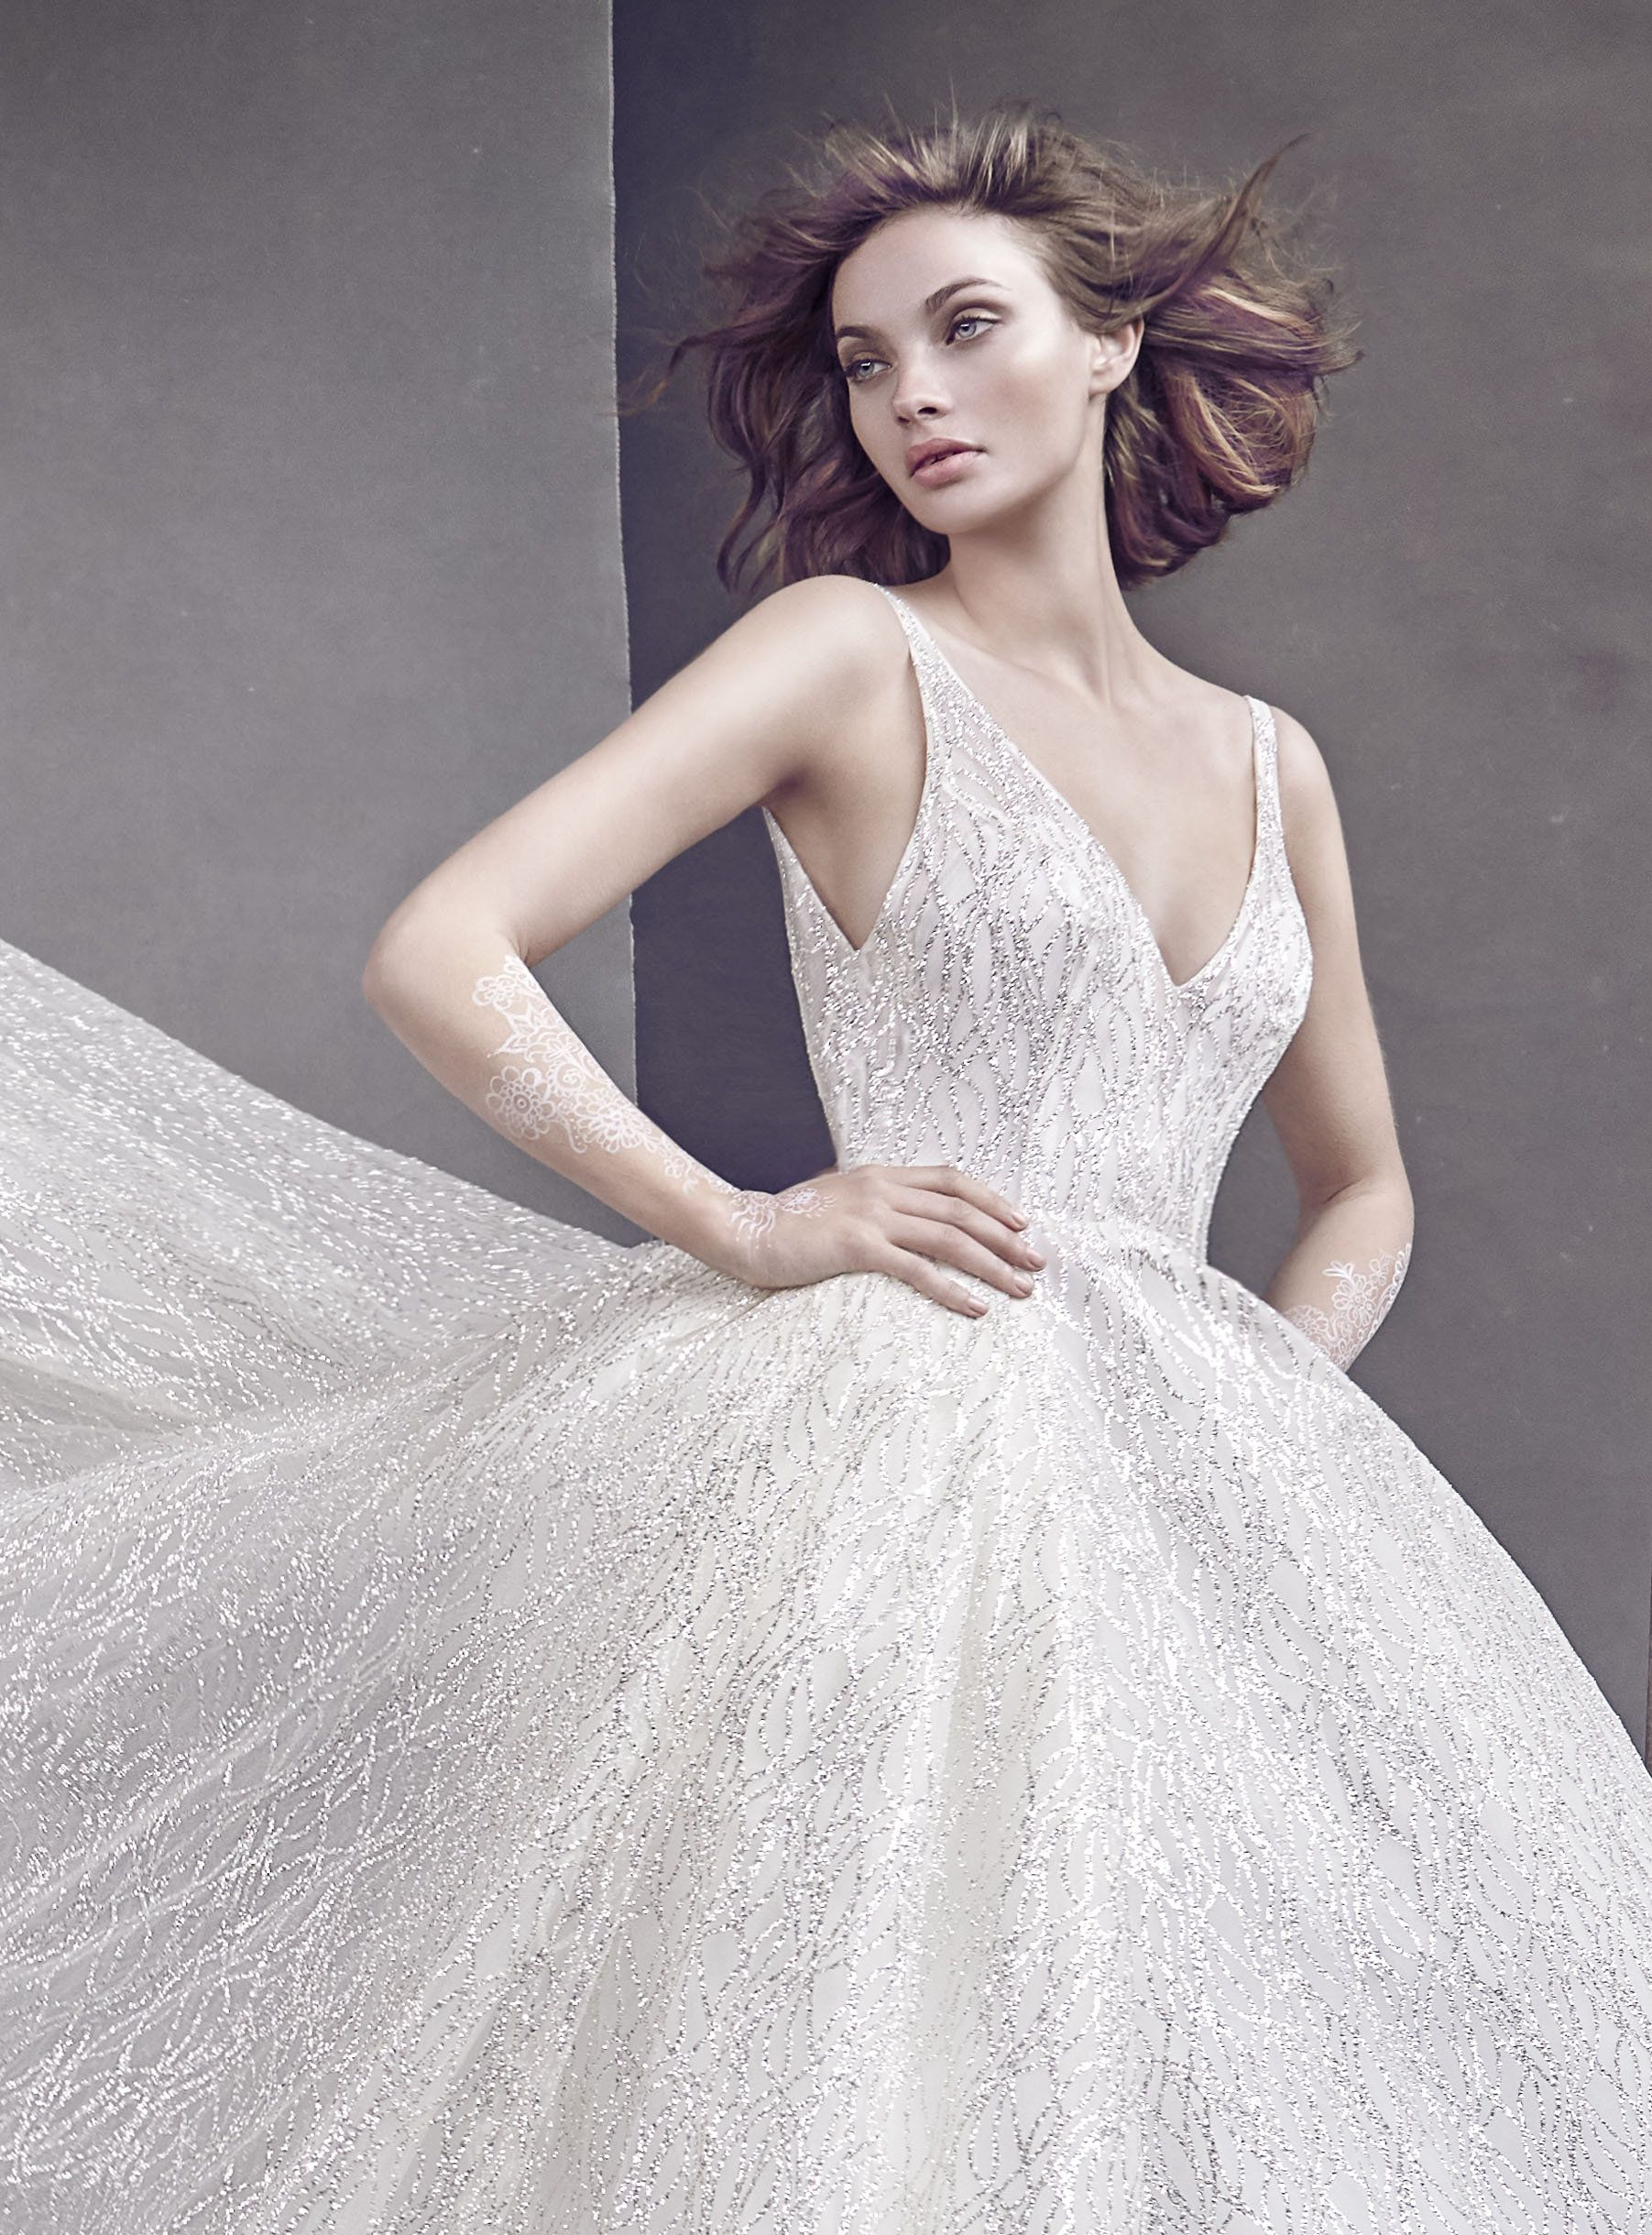 Style 3662 Ad Campaign By Lazaro